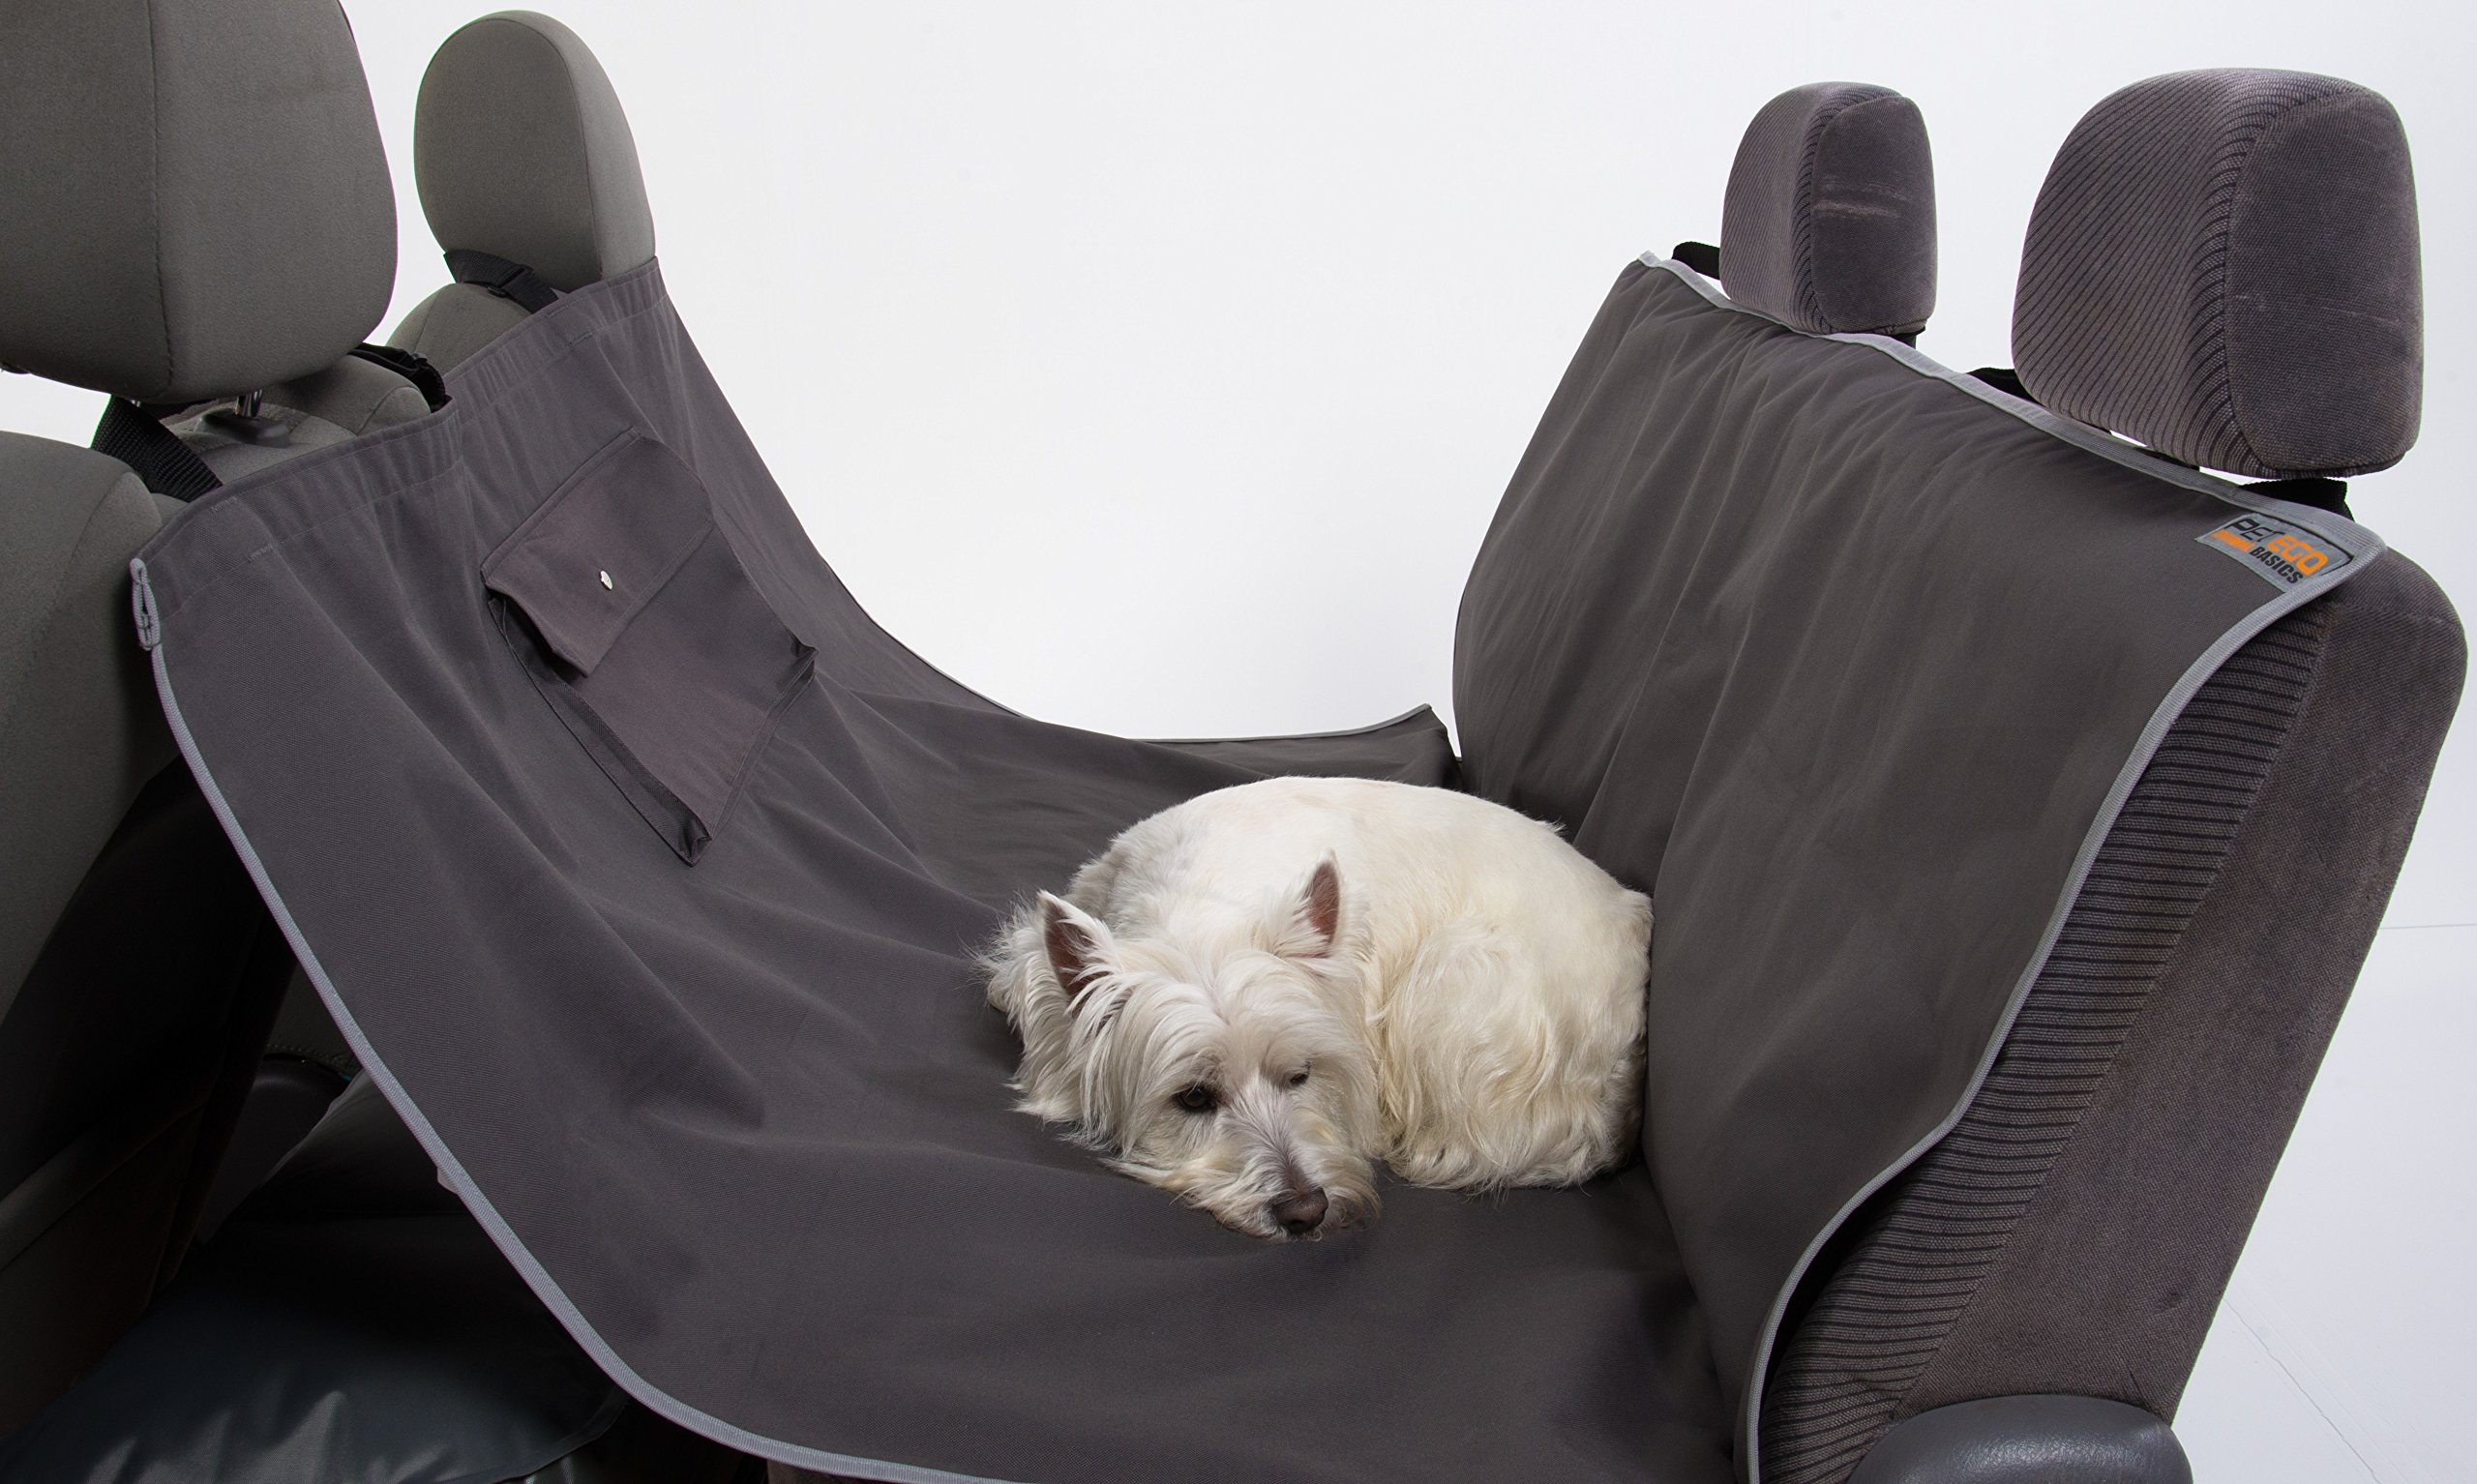 Petego Animal Basics Waterproof Car Seat Cover This Resilient and Stylish Canvas Dog Car Seat Cover Keeps Your Car or SUV Clean Make Traveling with your Pet Easy Anthracite/Grey Rear Seat Dog Hammock